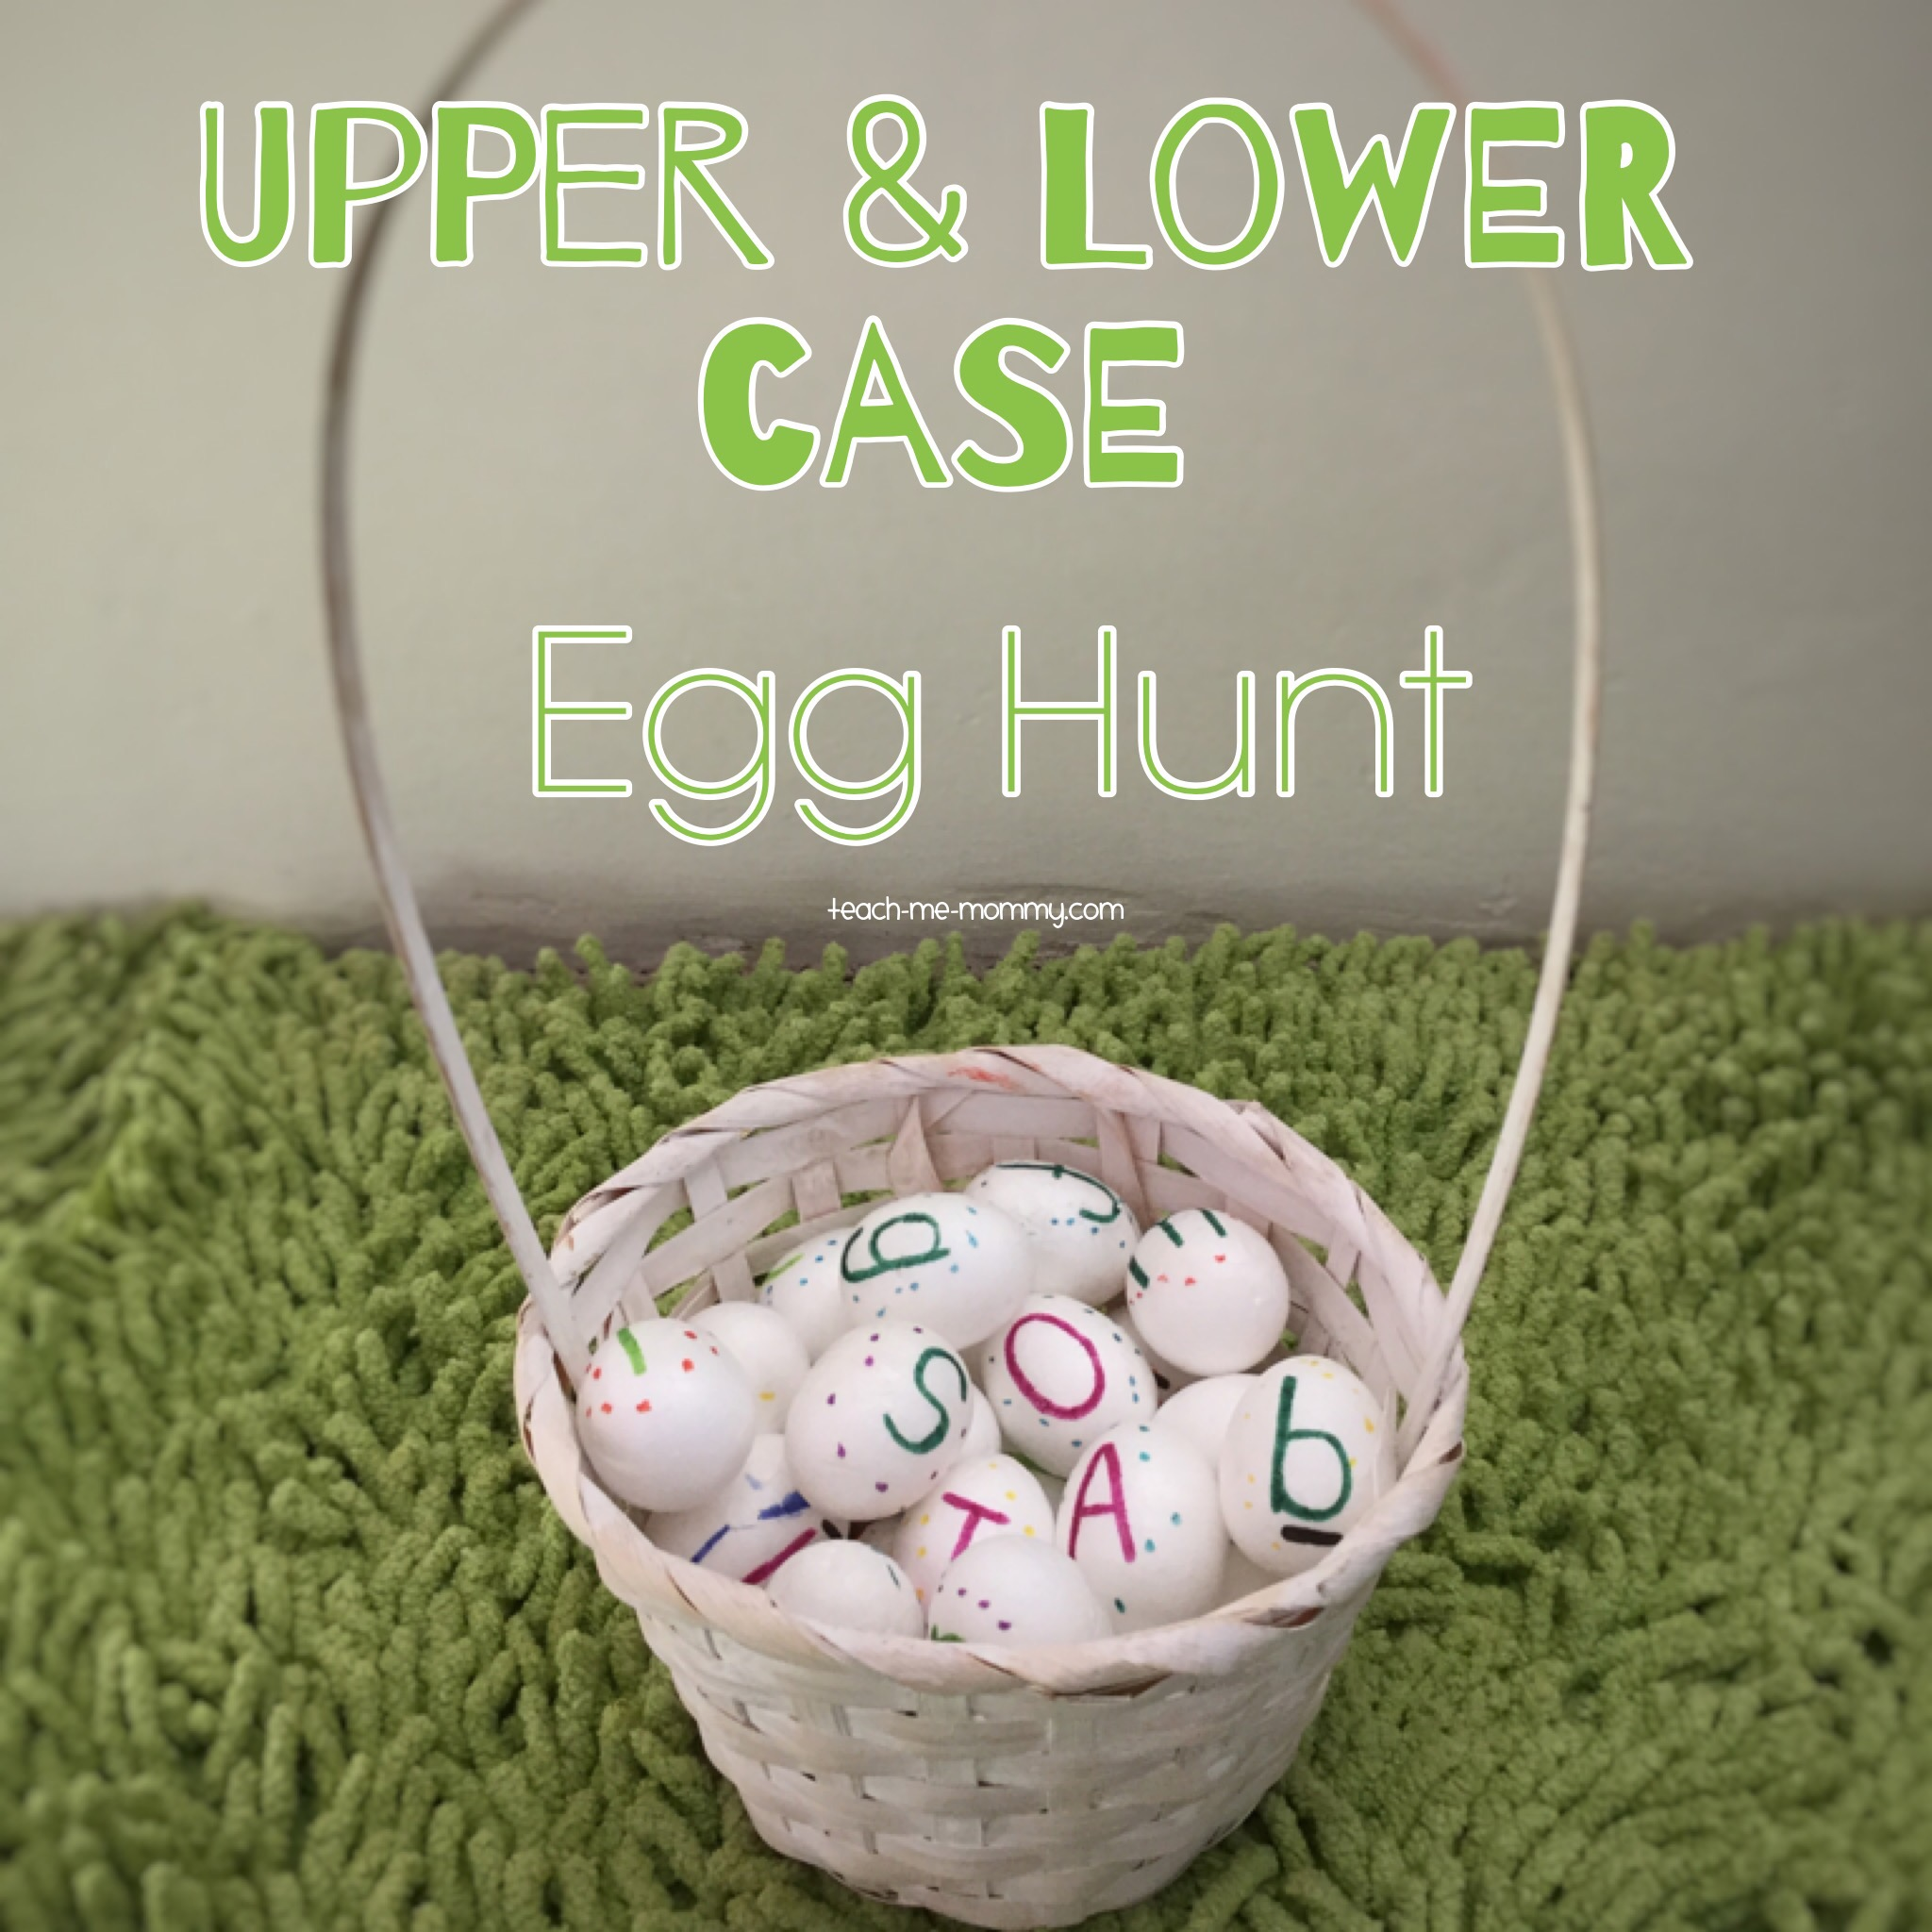 Upper and lower case egg hunt